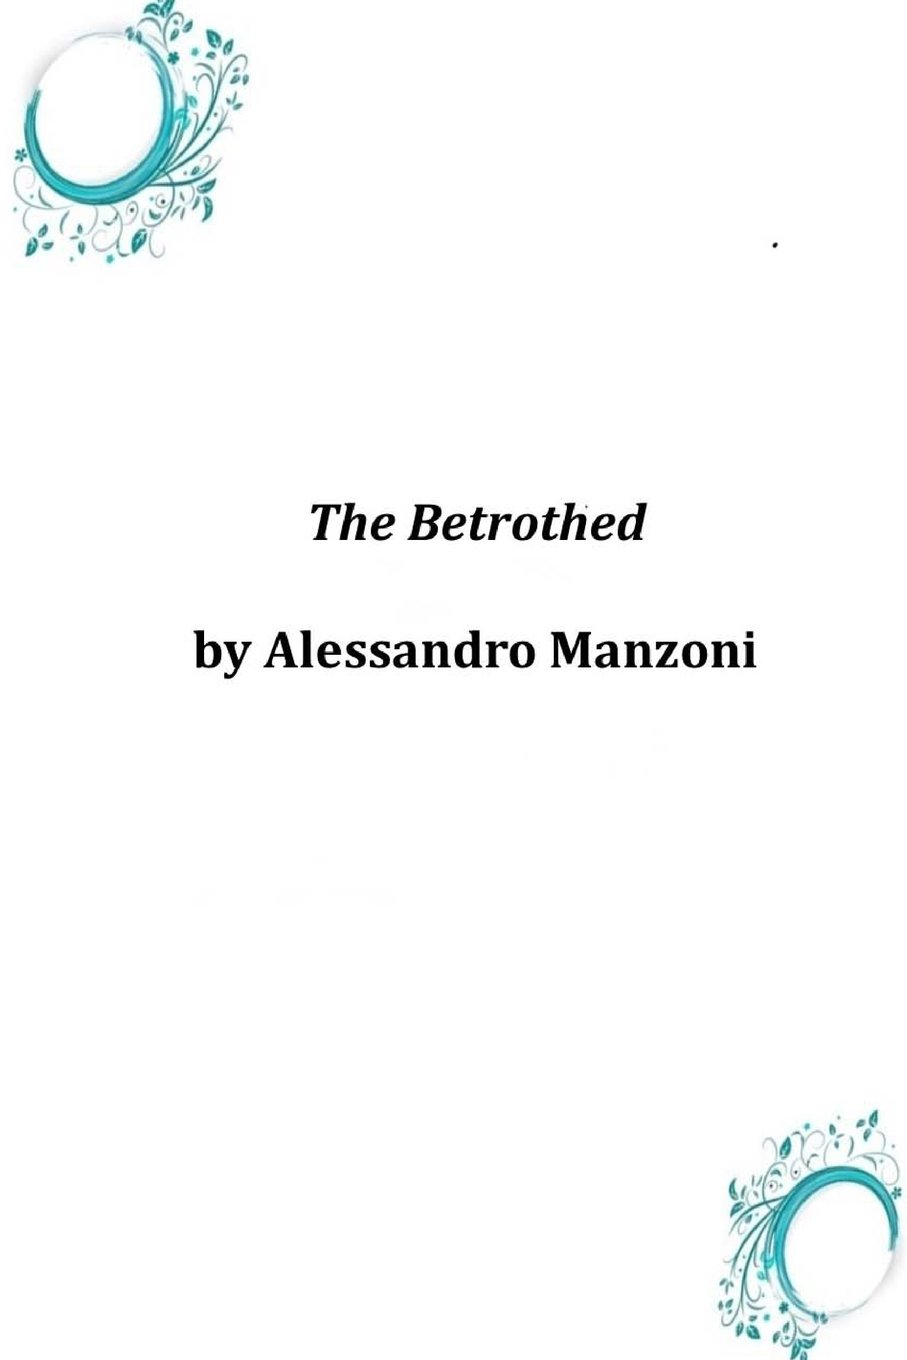 The betrothed alessandro manzoni 9781497579965 amazon books fandeluxe Images